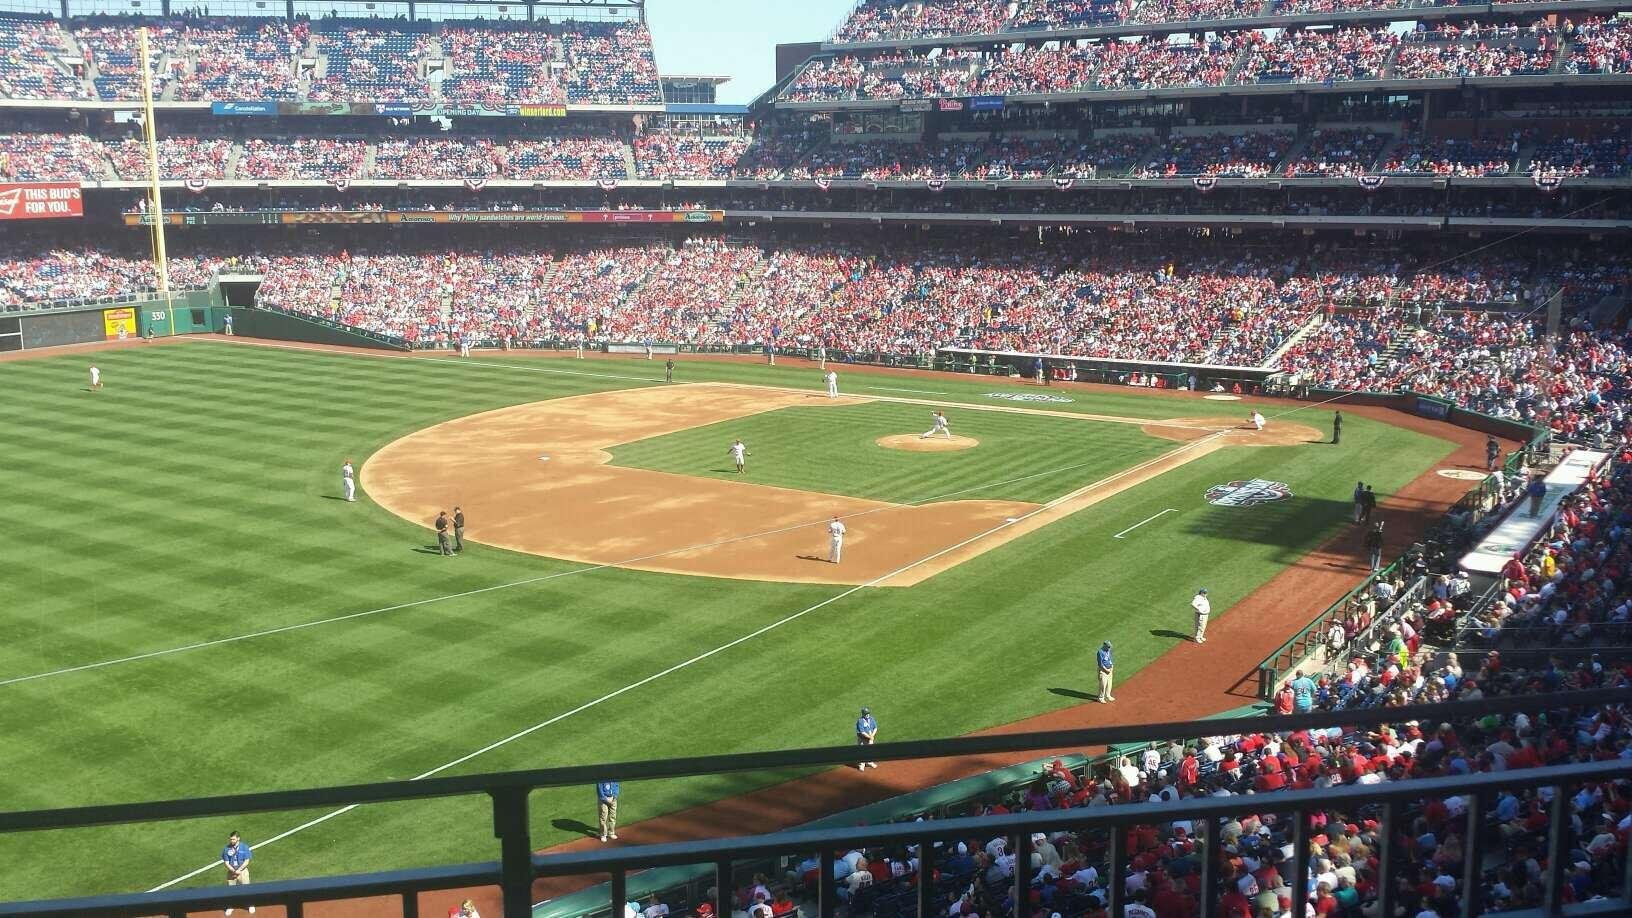 Citizens Bank Park Section 235 Row 2 Seat 8